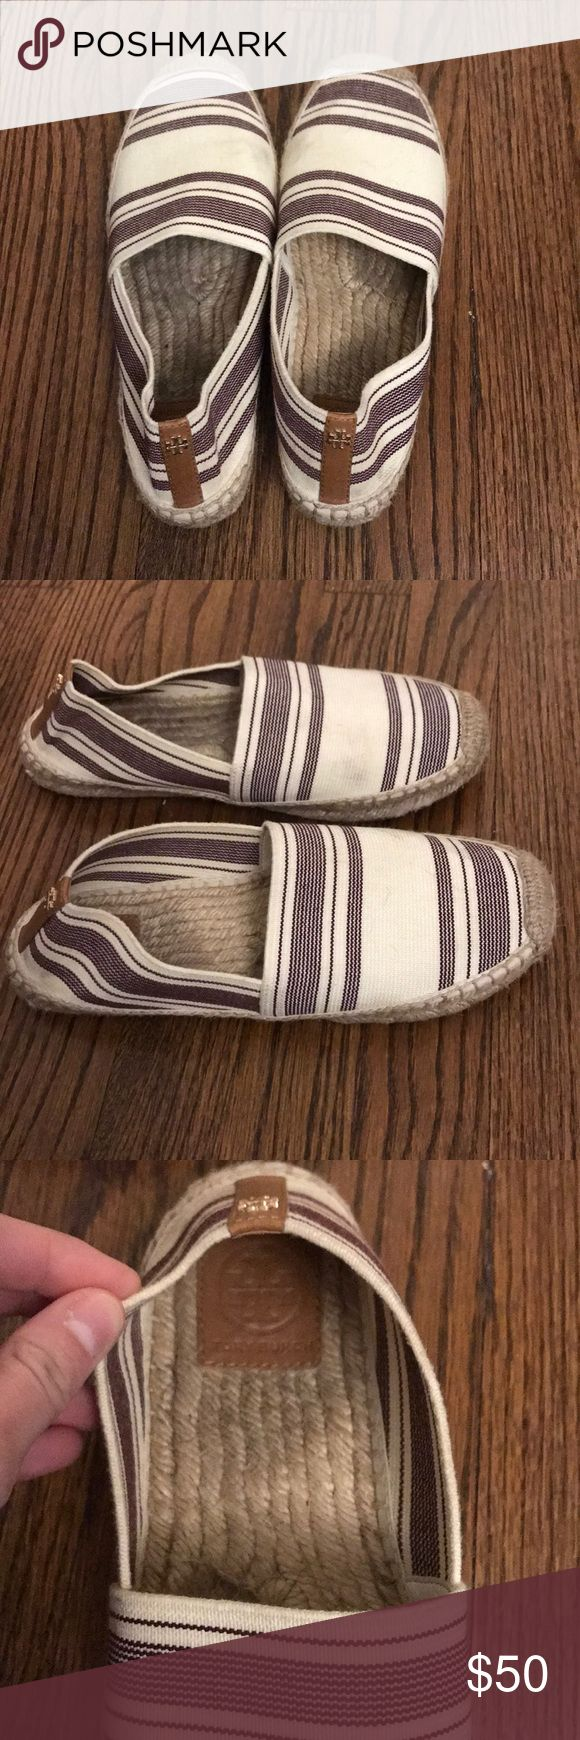 Tory Butch Espadrilles size 9 Tory Burch purple stripes espadrilles. They have a couple of markings around the shoe. Tory Burch Shoes Espadrilles